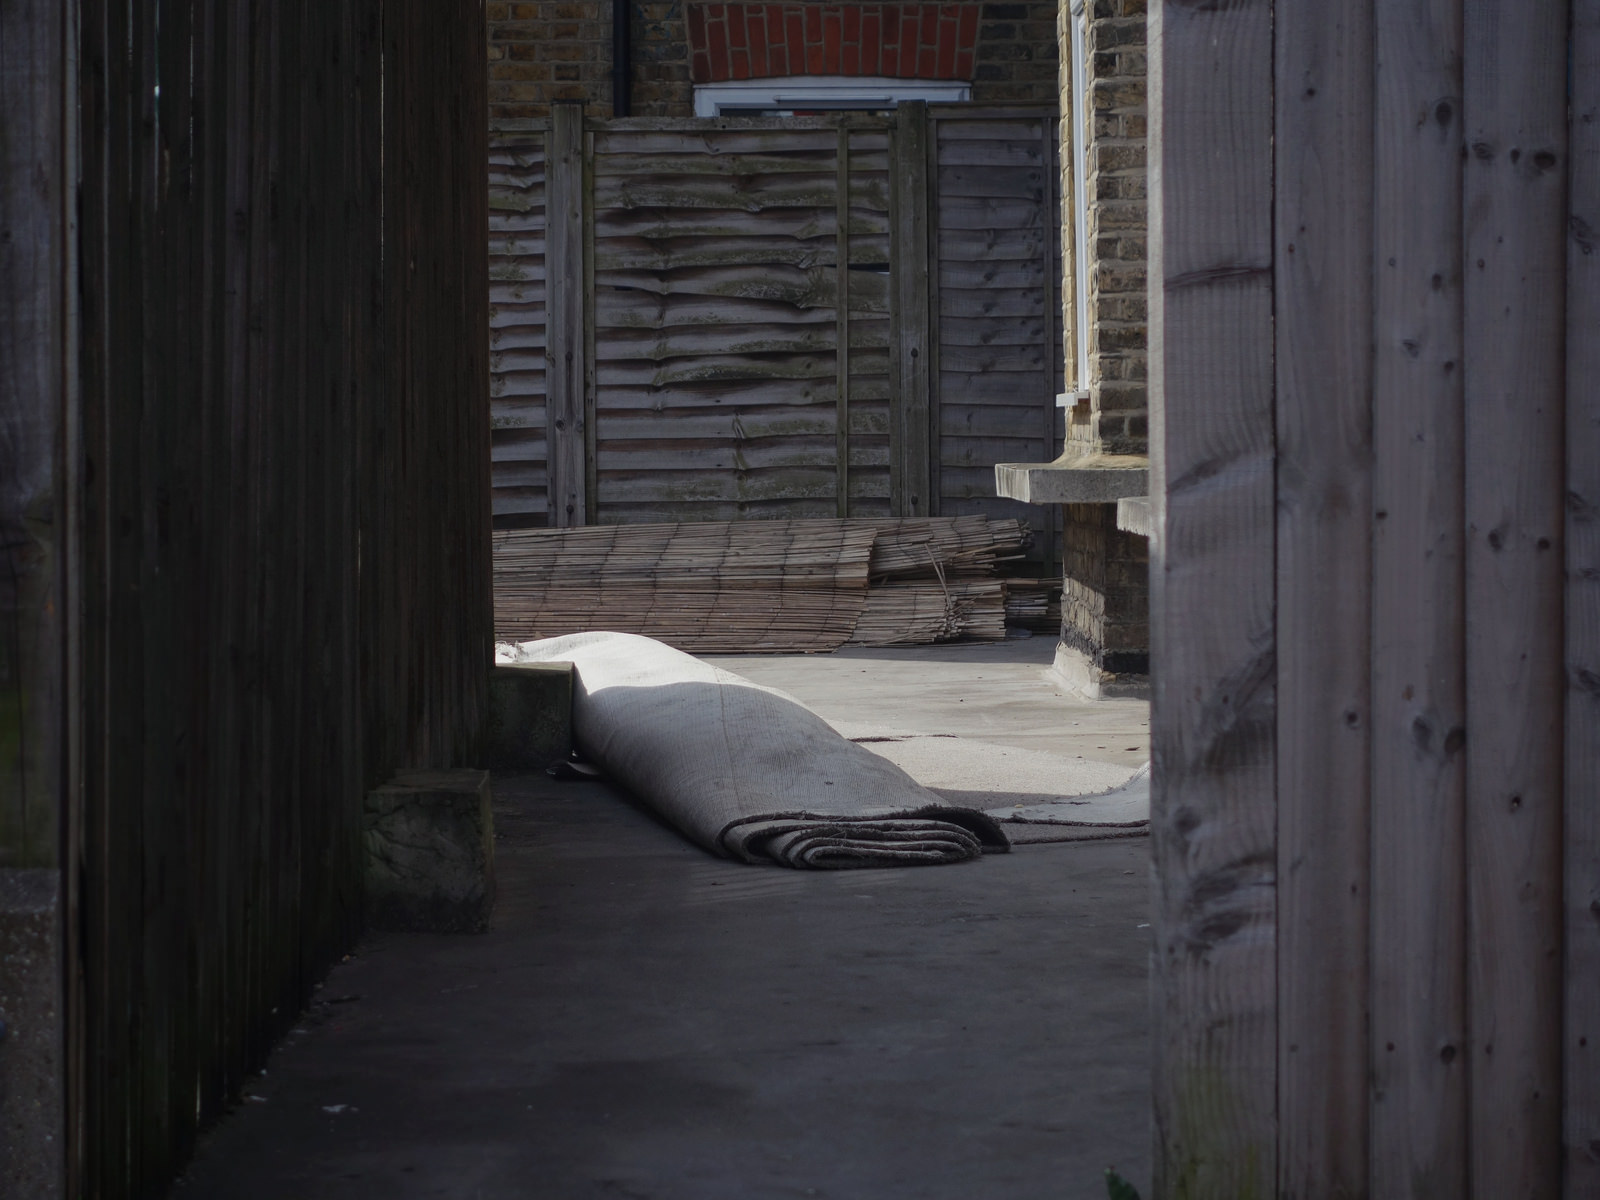 Carpet outside, Streatham, London, 2014